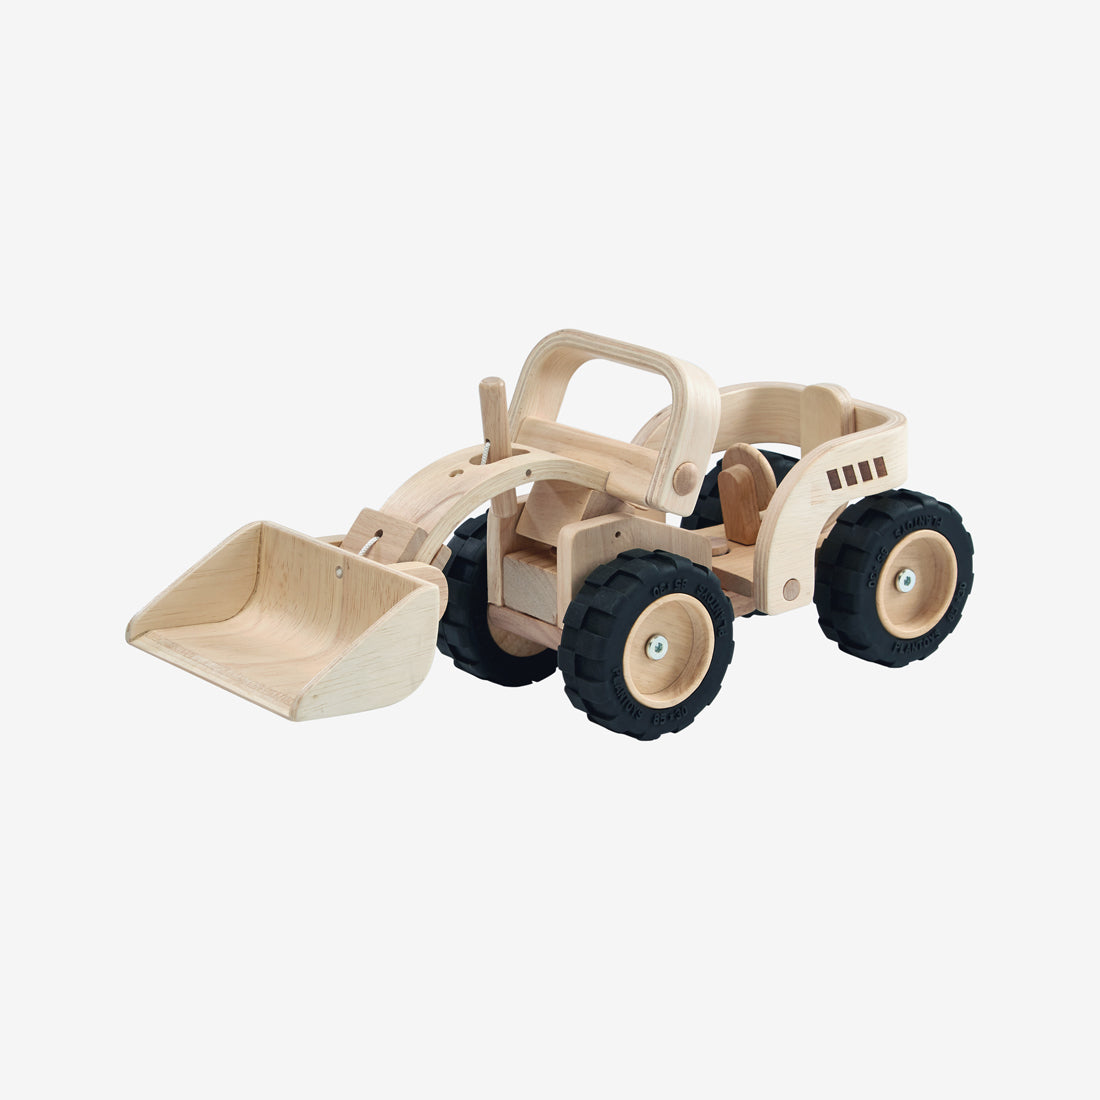 Big Wooden Trucks - Bulldozer